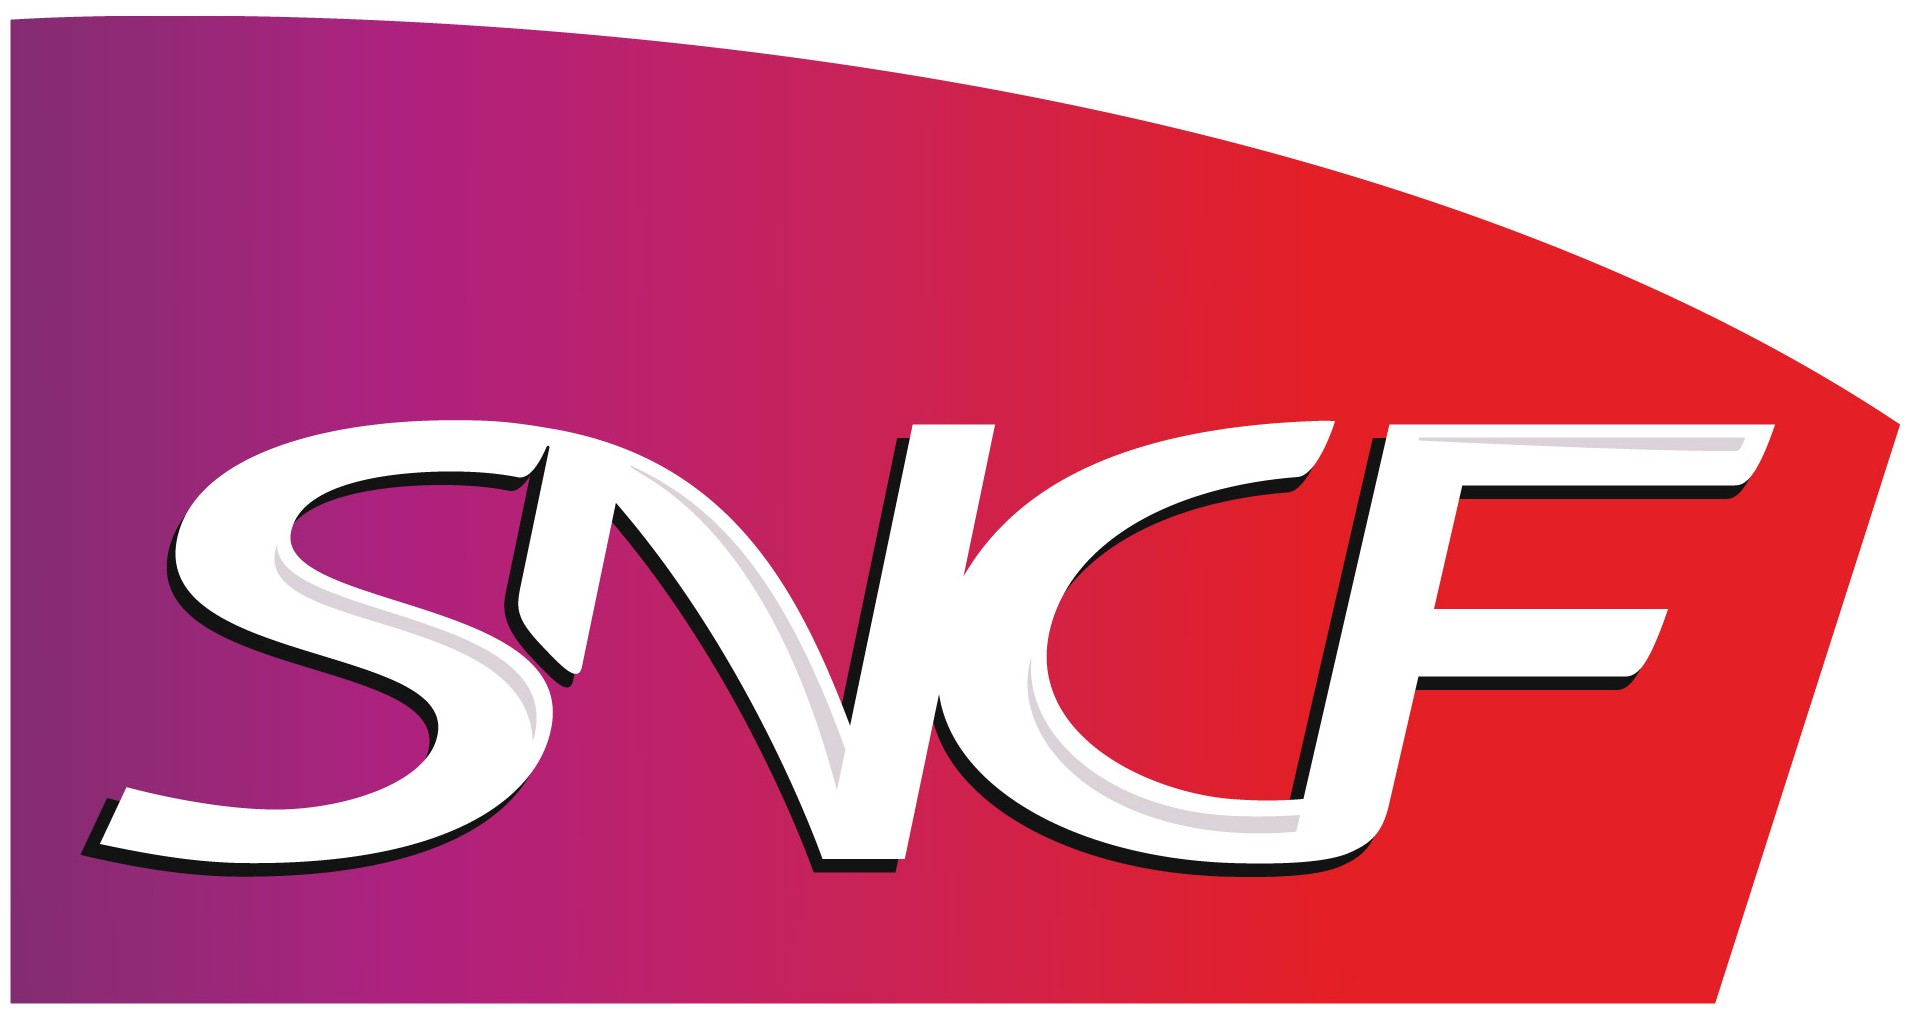 logo_sncf_connected-store